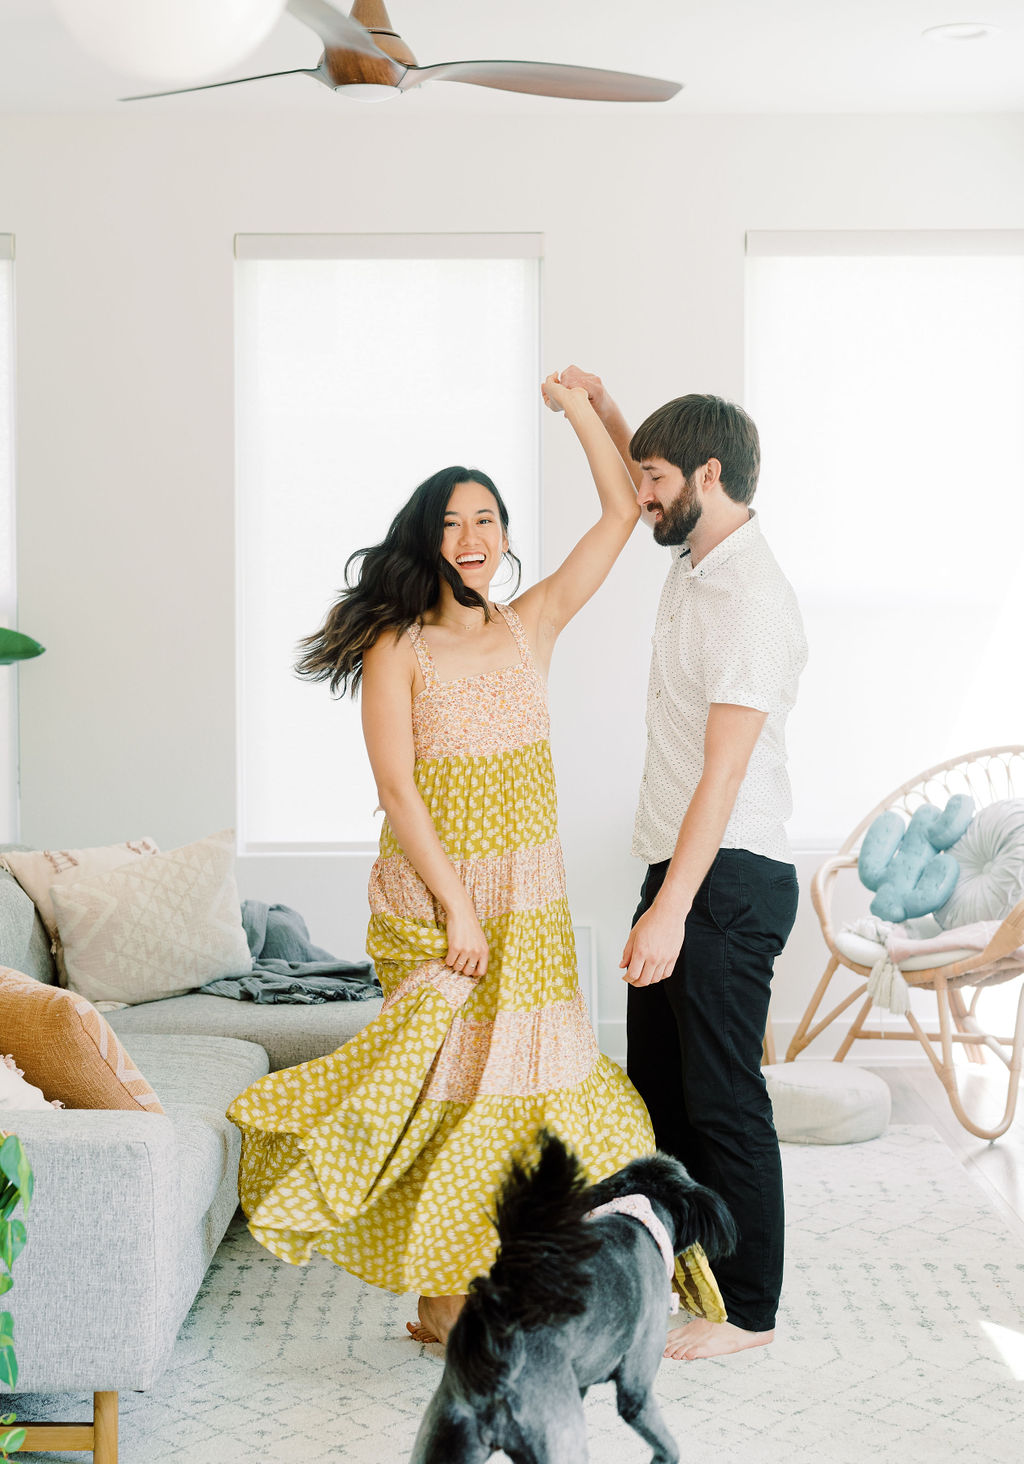 Austin-Intimate-Wedding-Elopement-Photograper-Film-Downtown-Engagement-Session-Home-61.jpg